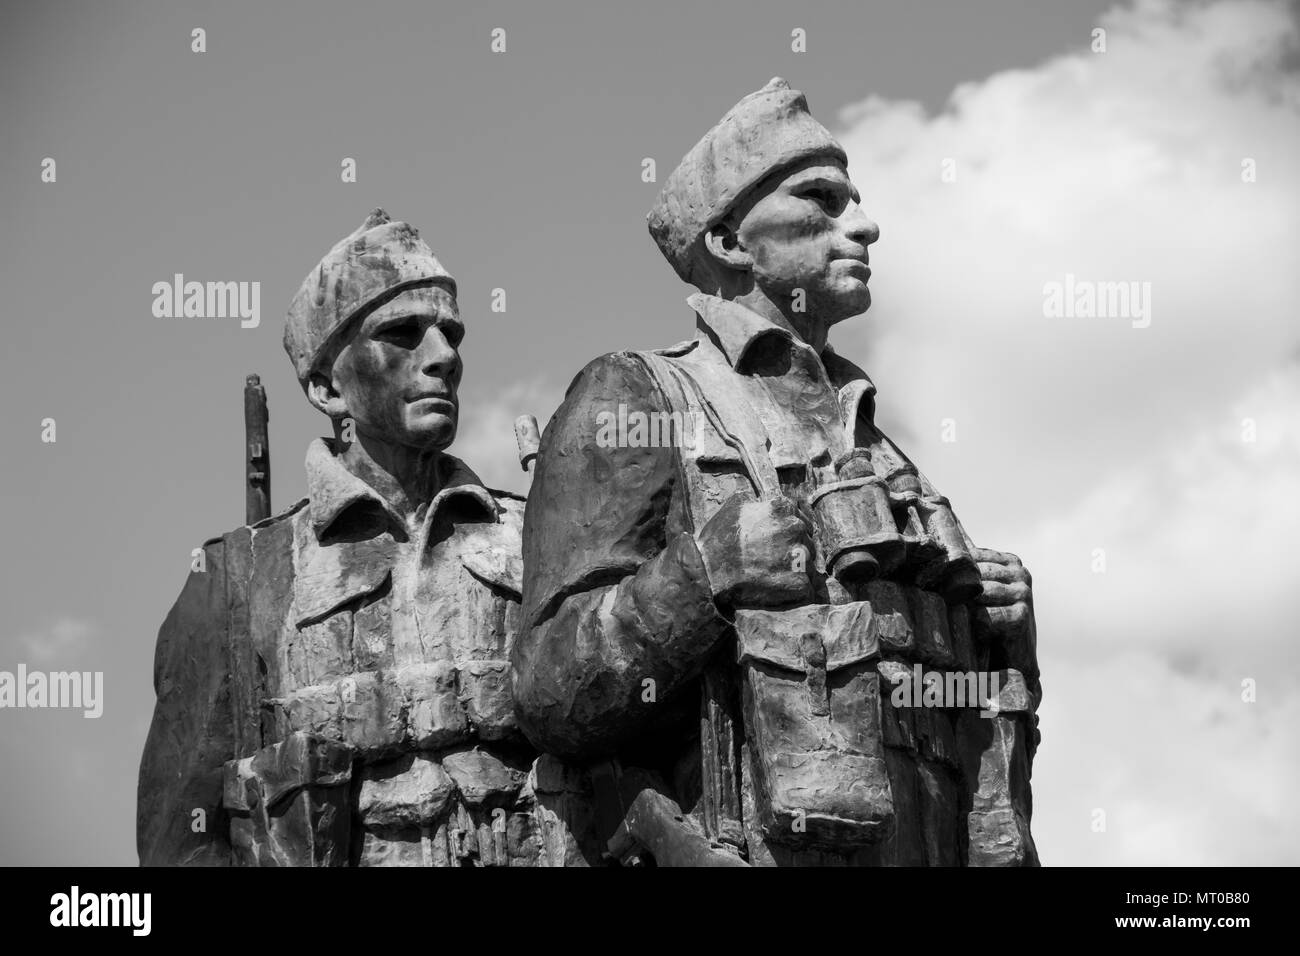 The Commando Memorial is a Category A listed monument in Lochaber, Scotland, dedicated to the men of the original British Commando Forces. - Stock Image